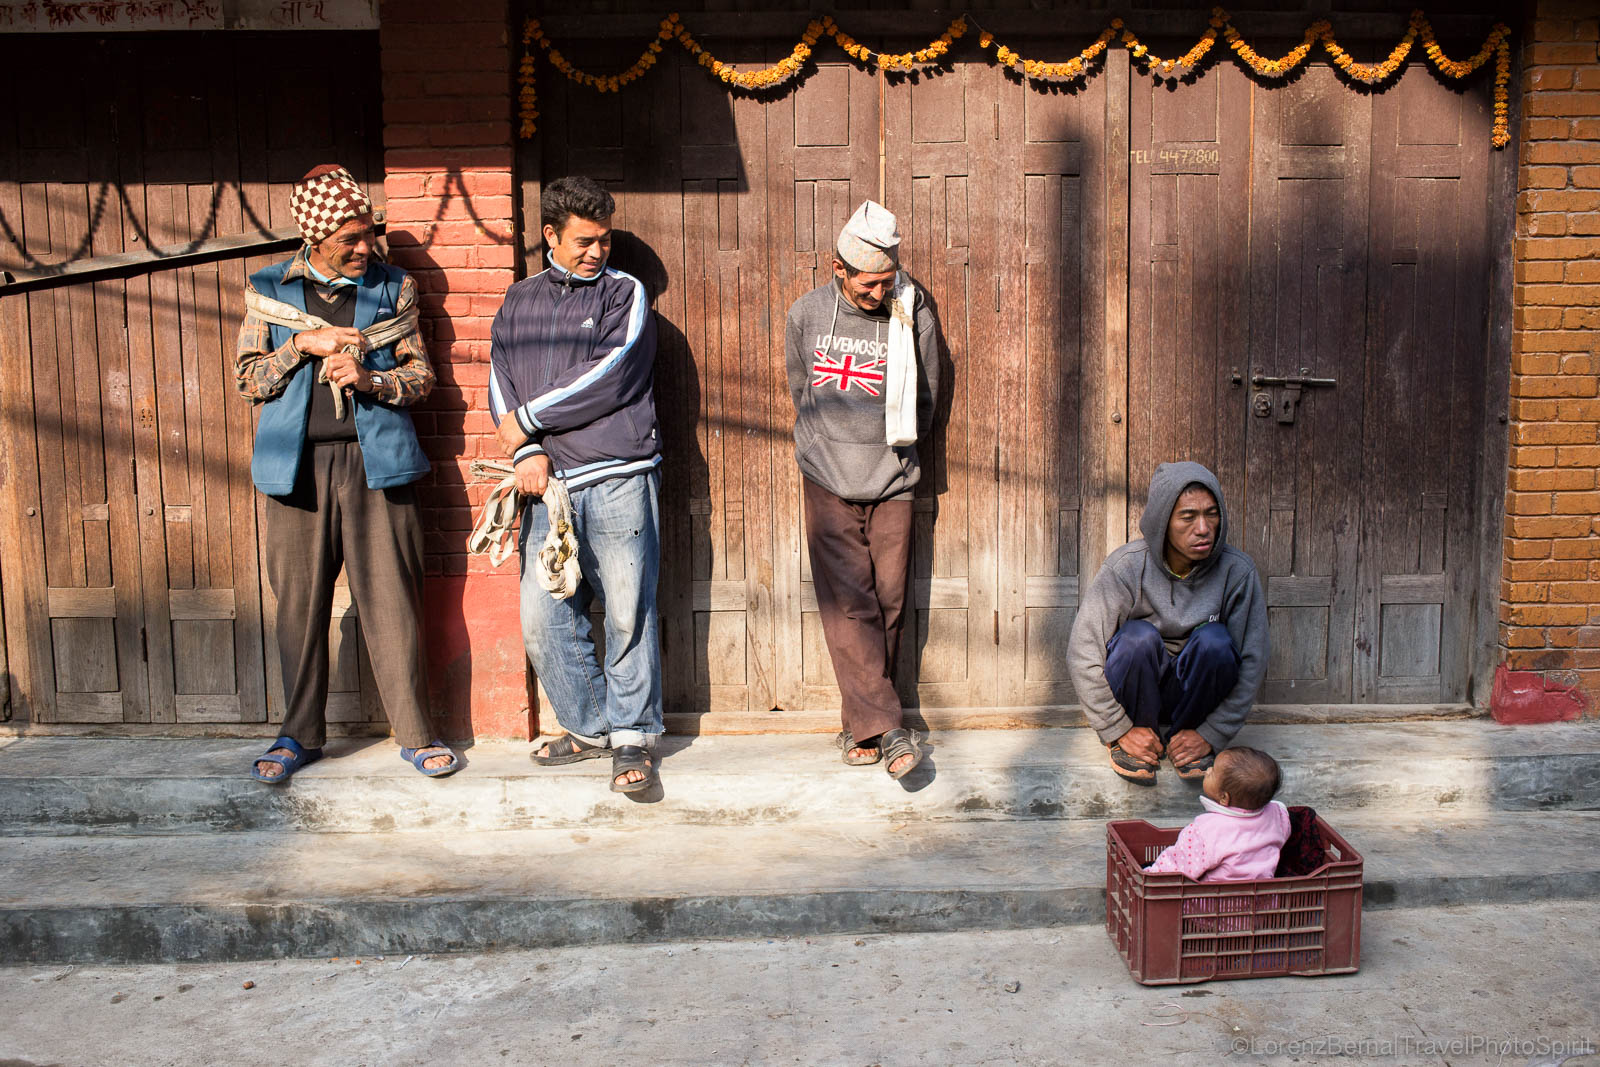 A group of porters enjoying the first rays of sun warming up the streets of Bhaktapur, entertained by a baby playing in a box in front of her father.